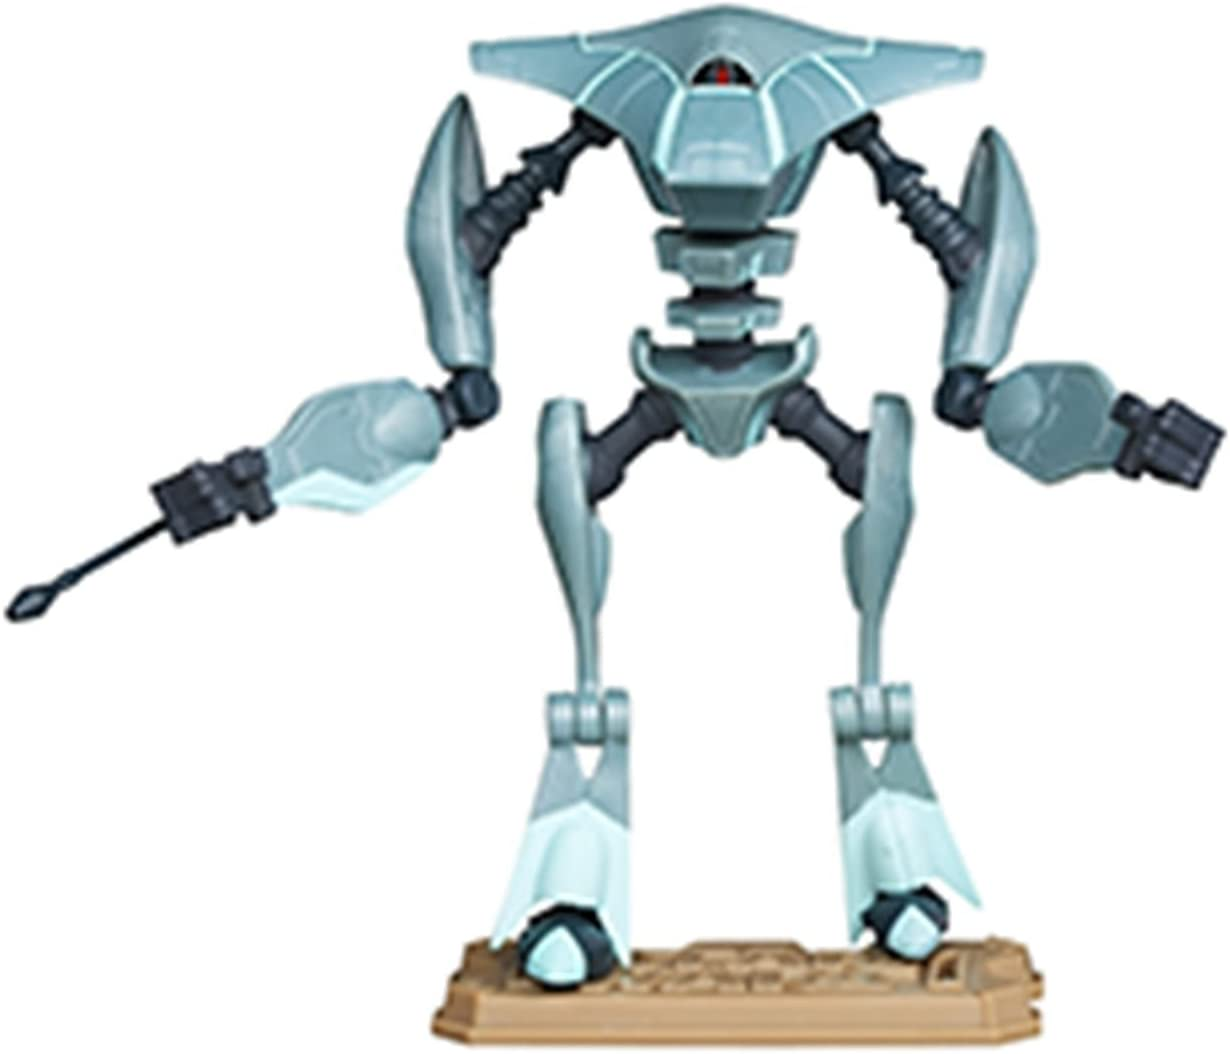 STAR WARS CLONE WARS ANIMATED 3.75 INCH AQUA BATTLE DROID ACTION FIGURE